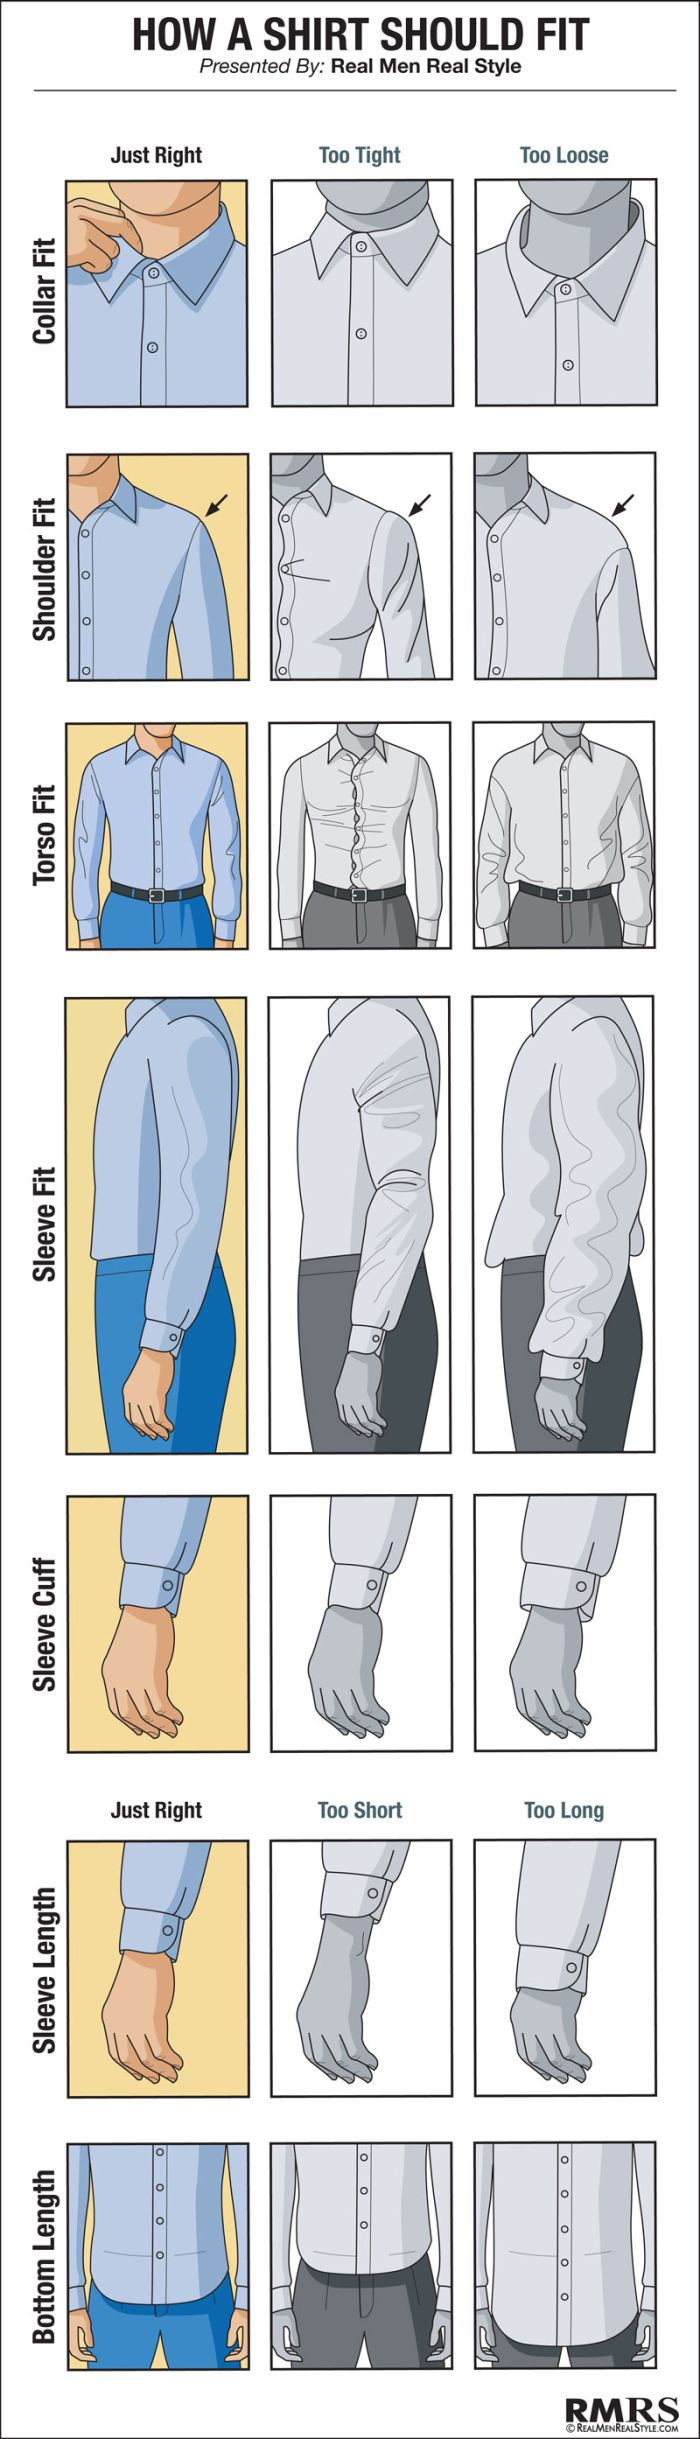 How To Tell If Your Shirt Fits (infographic)